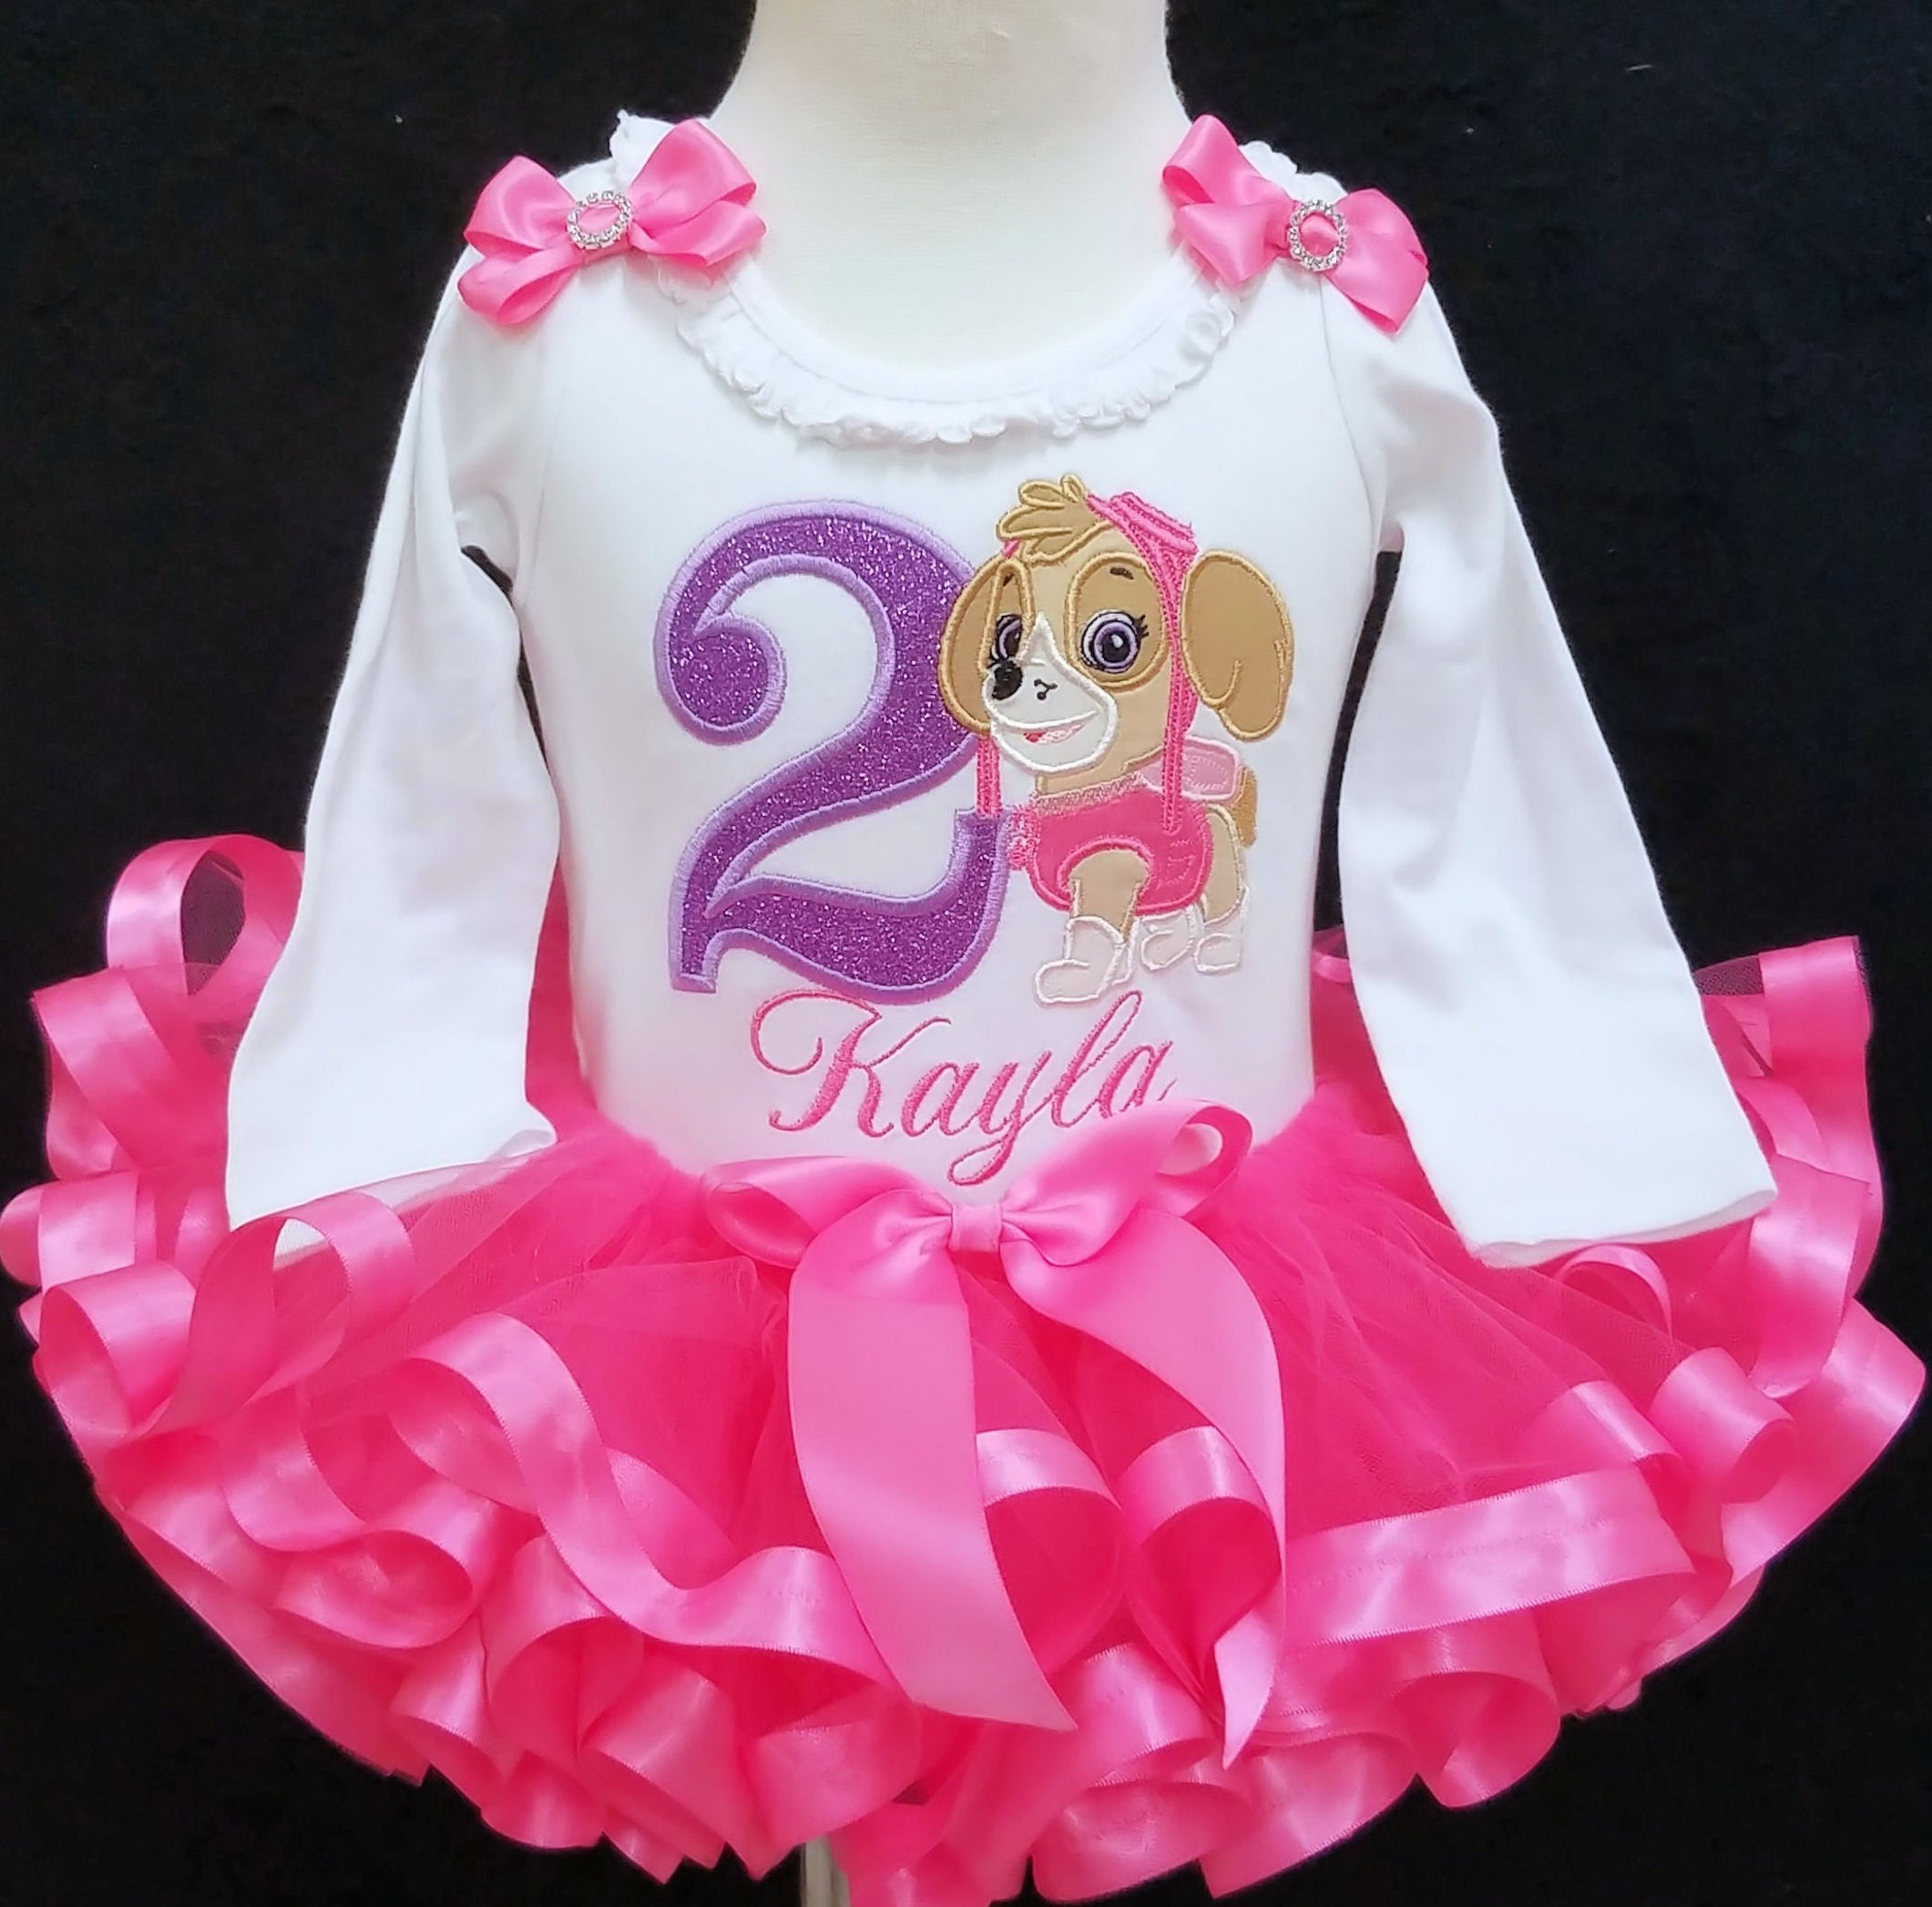 Ribbon trimmed tutu set, 2nd birthday tutu outfit, paw patrol, second birthday girl outfit, custom made personalized birthday outfit